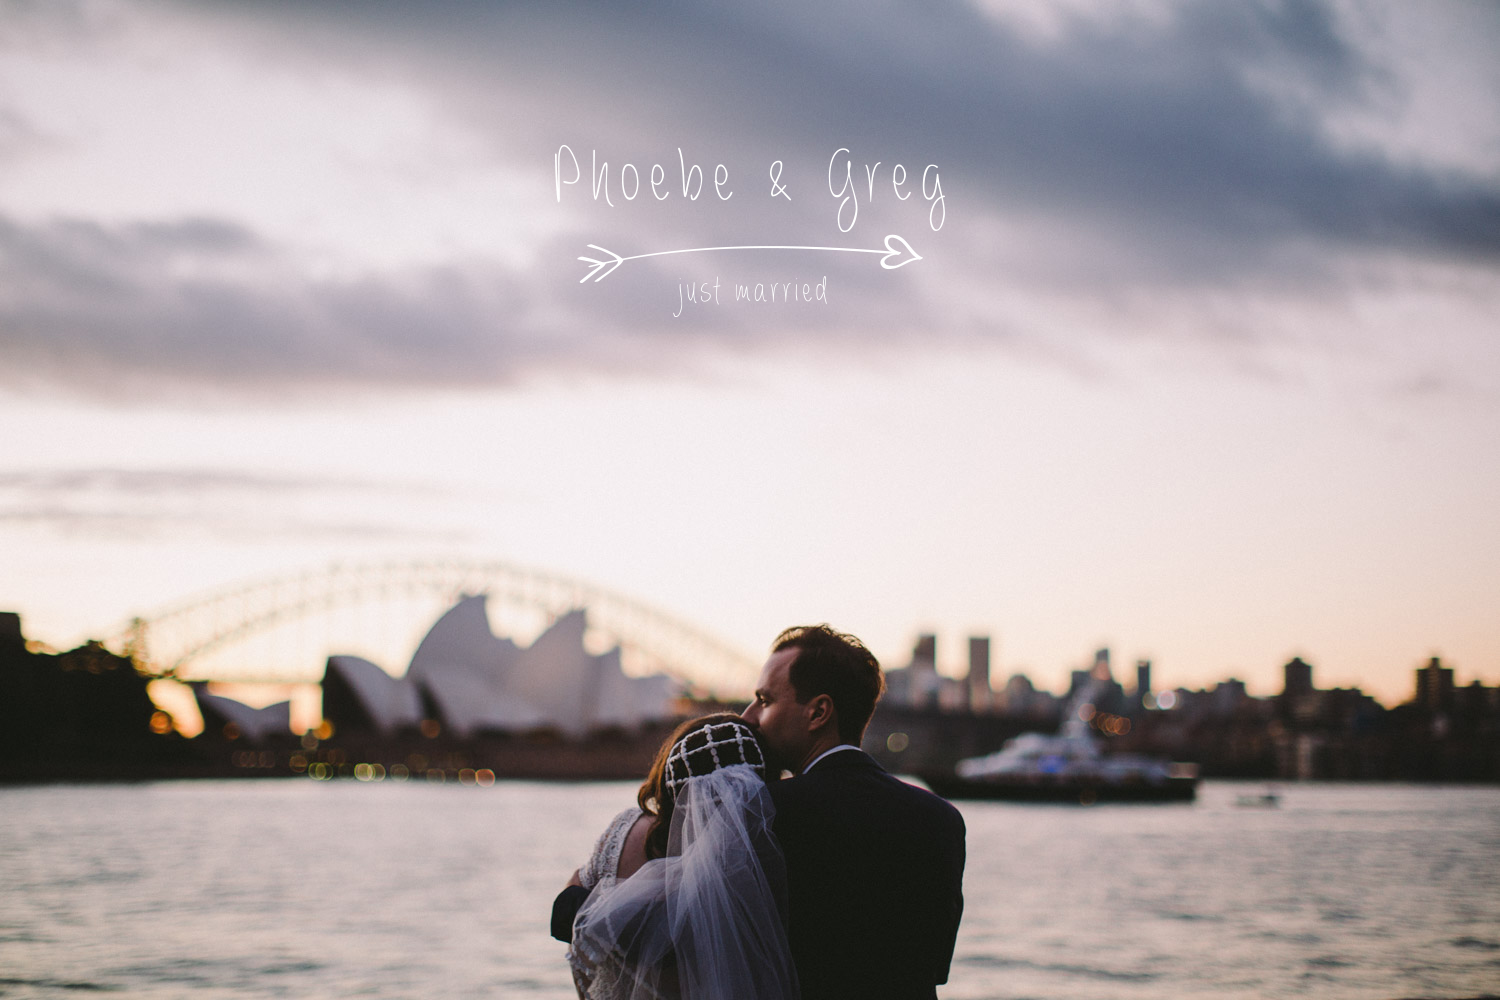 Just married: Phoebe & Gregory overlooking Sydney Harbour